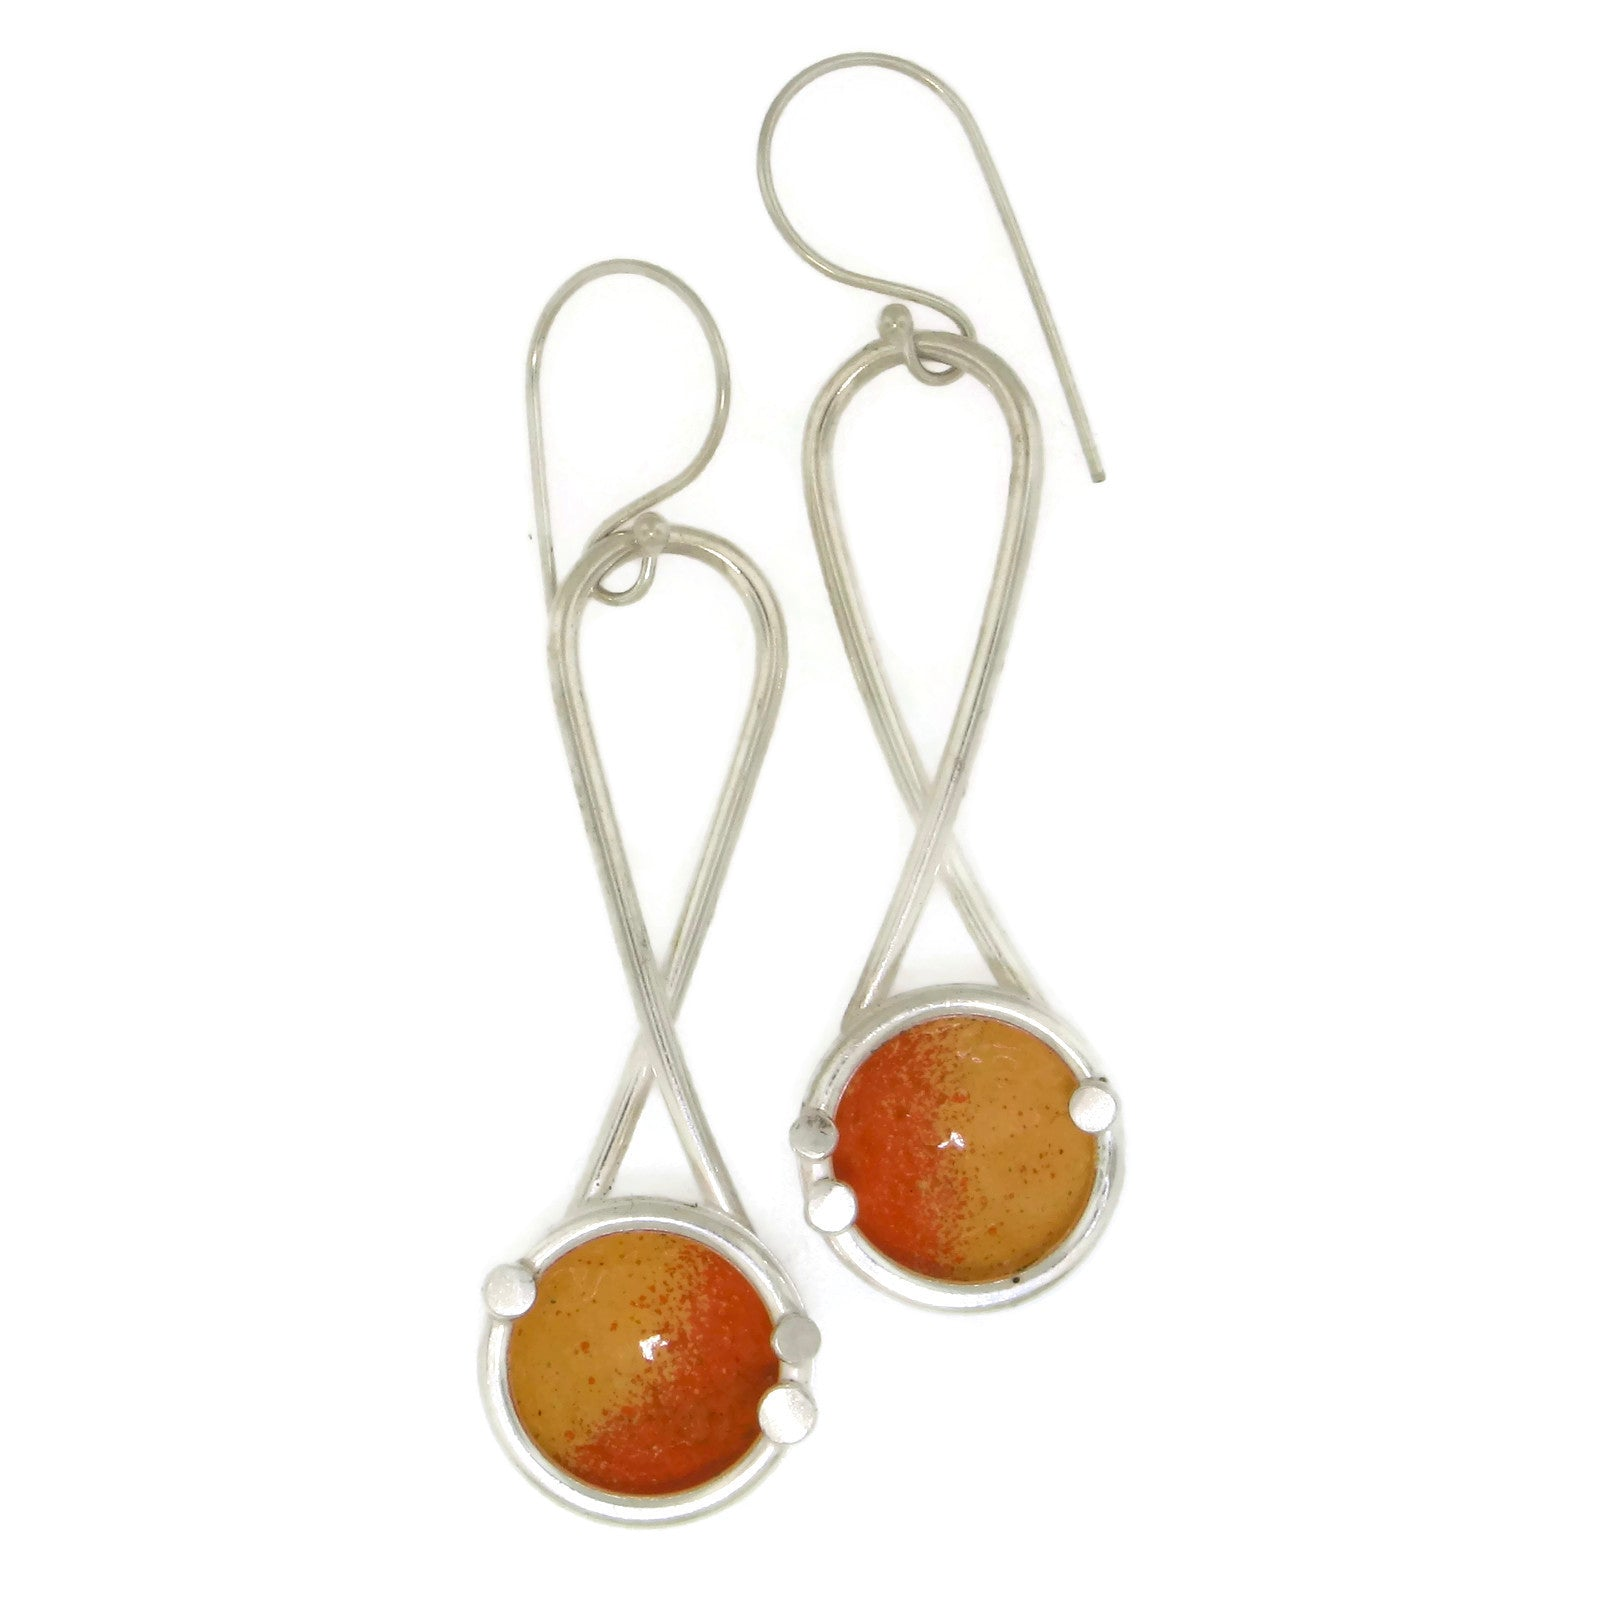 Hanging Enamel Dome Earrings Yellow/Orange